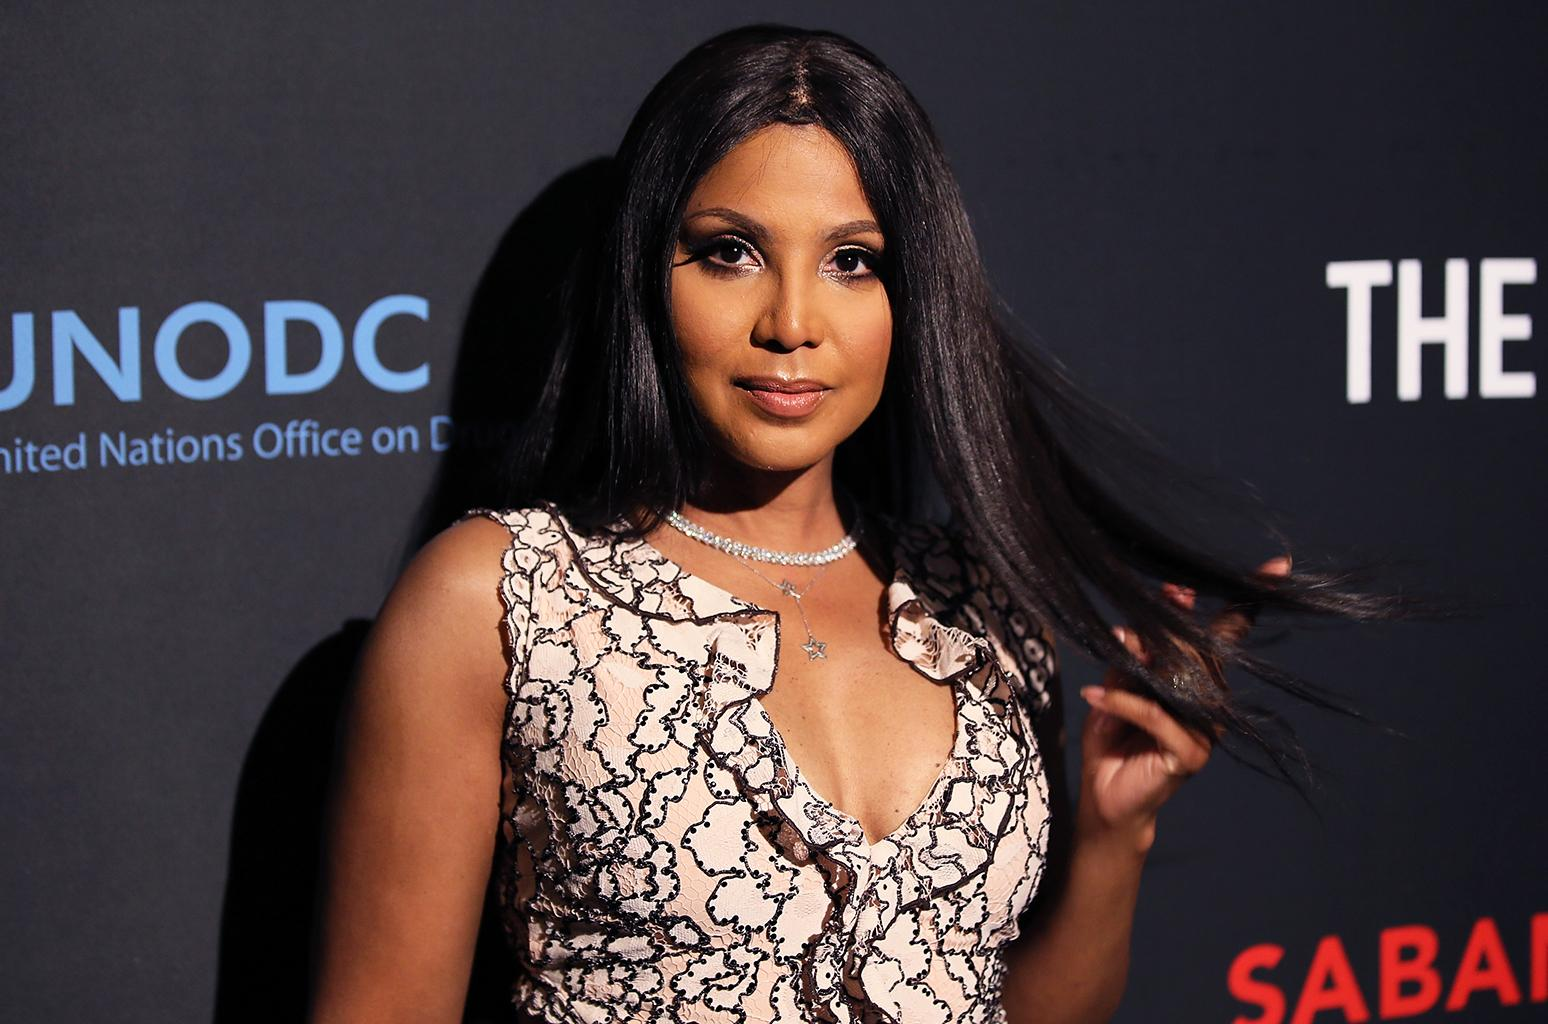 Toni Braxton's Fans Tell Her She Looks Drop Dead-Gorgeous After Seeing Her Recent Video In Which She's Showing Fans What She's Working With